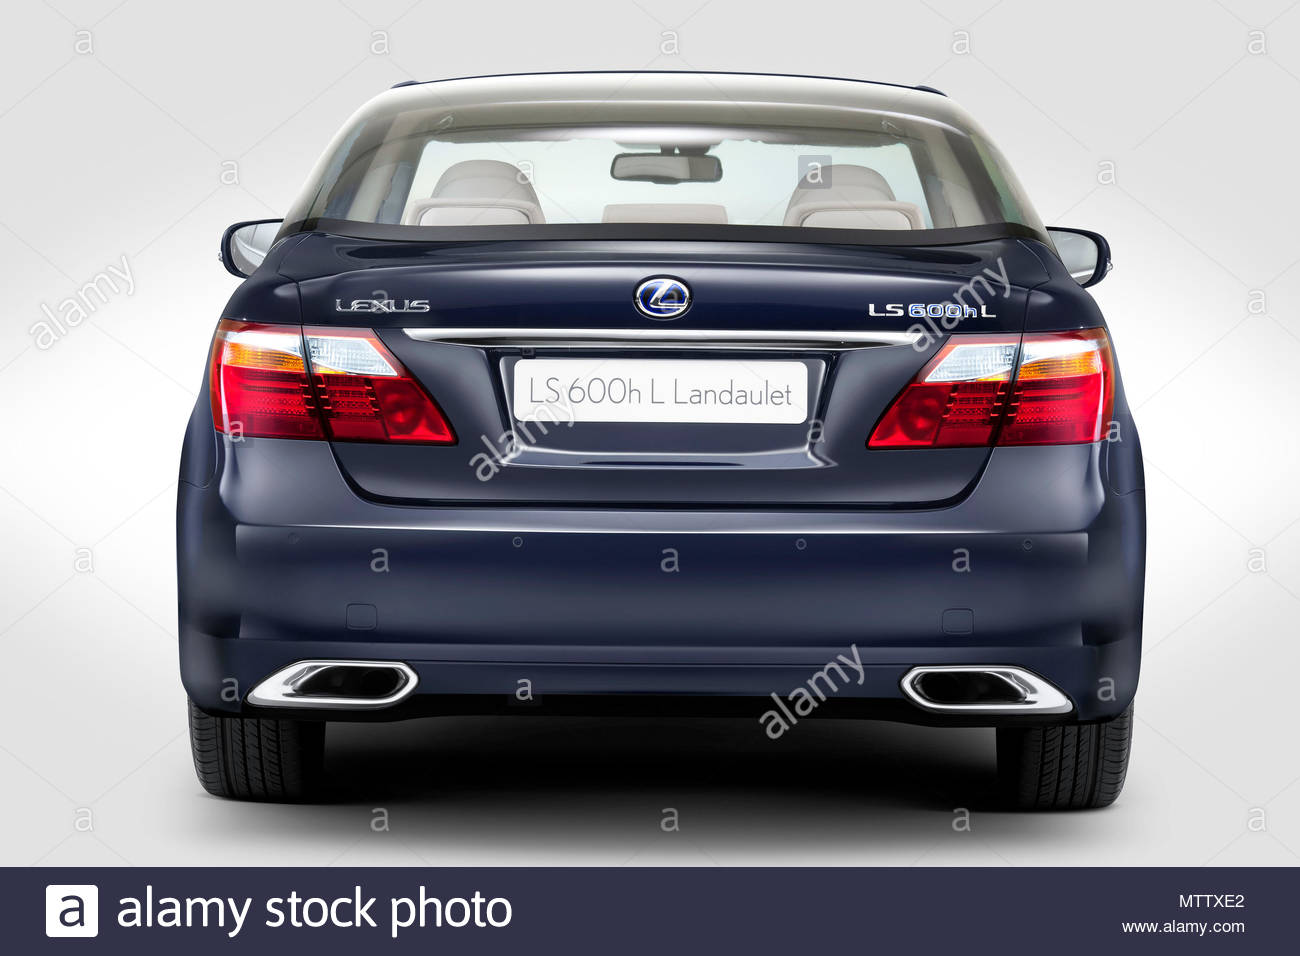 https://c8.alamy.com/comp/MTTXE2/lexus-ls-600h-l-landaulet-a-unique-full-hybrid-lexus-ls-600h-l-landaulet-featuring-a-one-piece-transparent-polycarbonate-roof-will-serve-as-the-official-royal-wedding-car-on-the-occasion-of-the-marriage-of-his-serene-highness-prince-albert-ii-of-monaco-to-ms-charlene-wittstock-on-saturday-2nd-july-2011equipped-with-lexus-hybrid-drive-prince-alberts-ls-600h-l-offers-all-the-performance-and-comfort-expected-from-a-lexus-flagship-and-generates-significantly-lower-co2-nox-and-particulate-emissions-than-any-comparable-car-lexus-is-very-proud-to-present-this-exceptional-full-hybrid-vehicl-MTTXE2.jpg